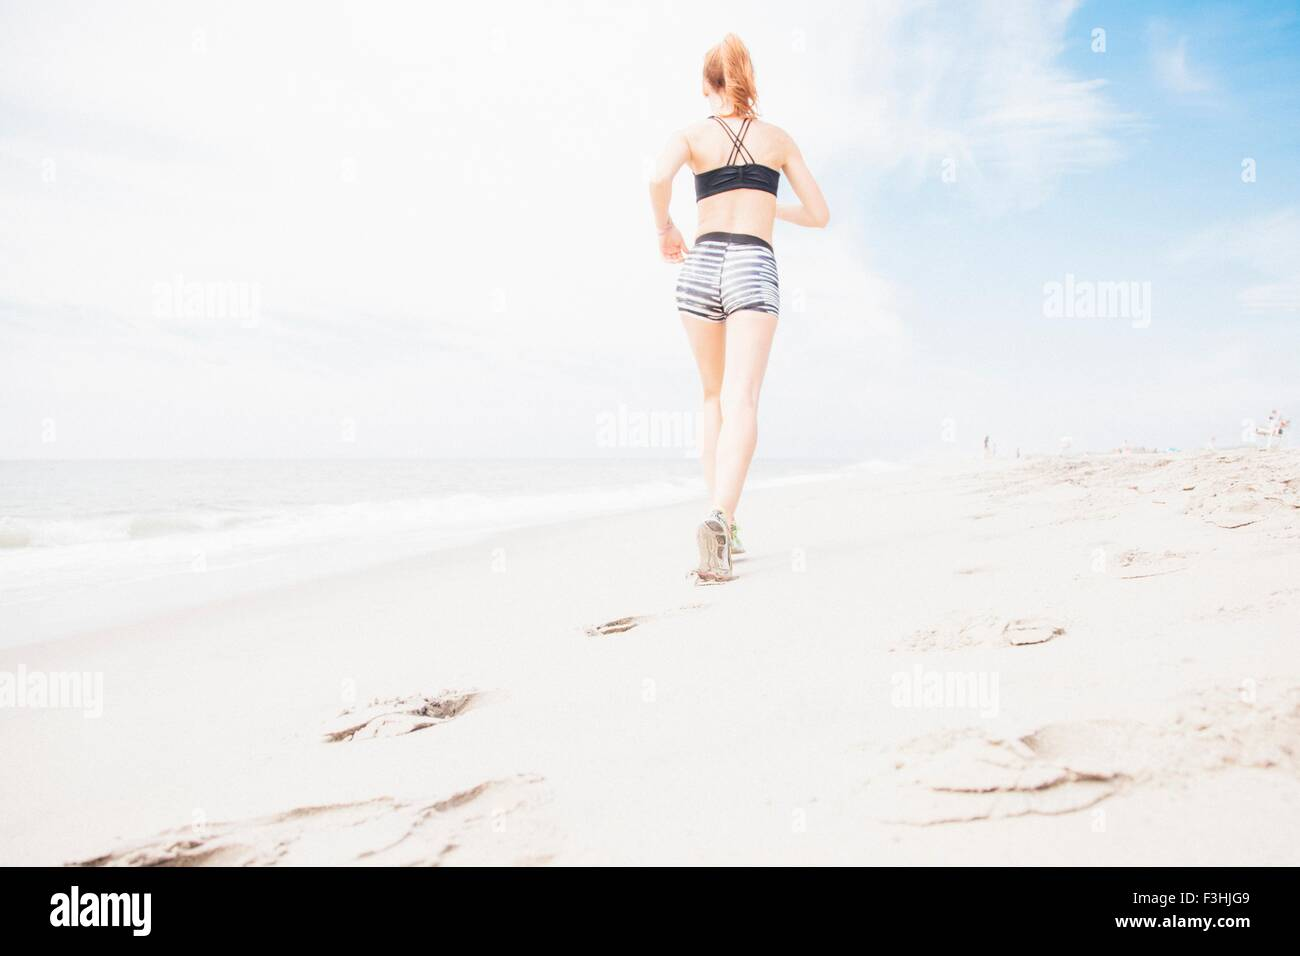 Mid adult woman power walking on beach, rear view, low angle view - Stock Image